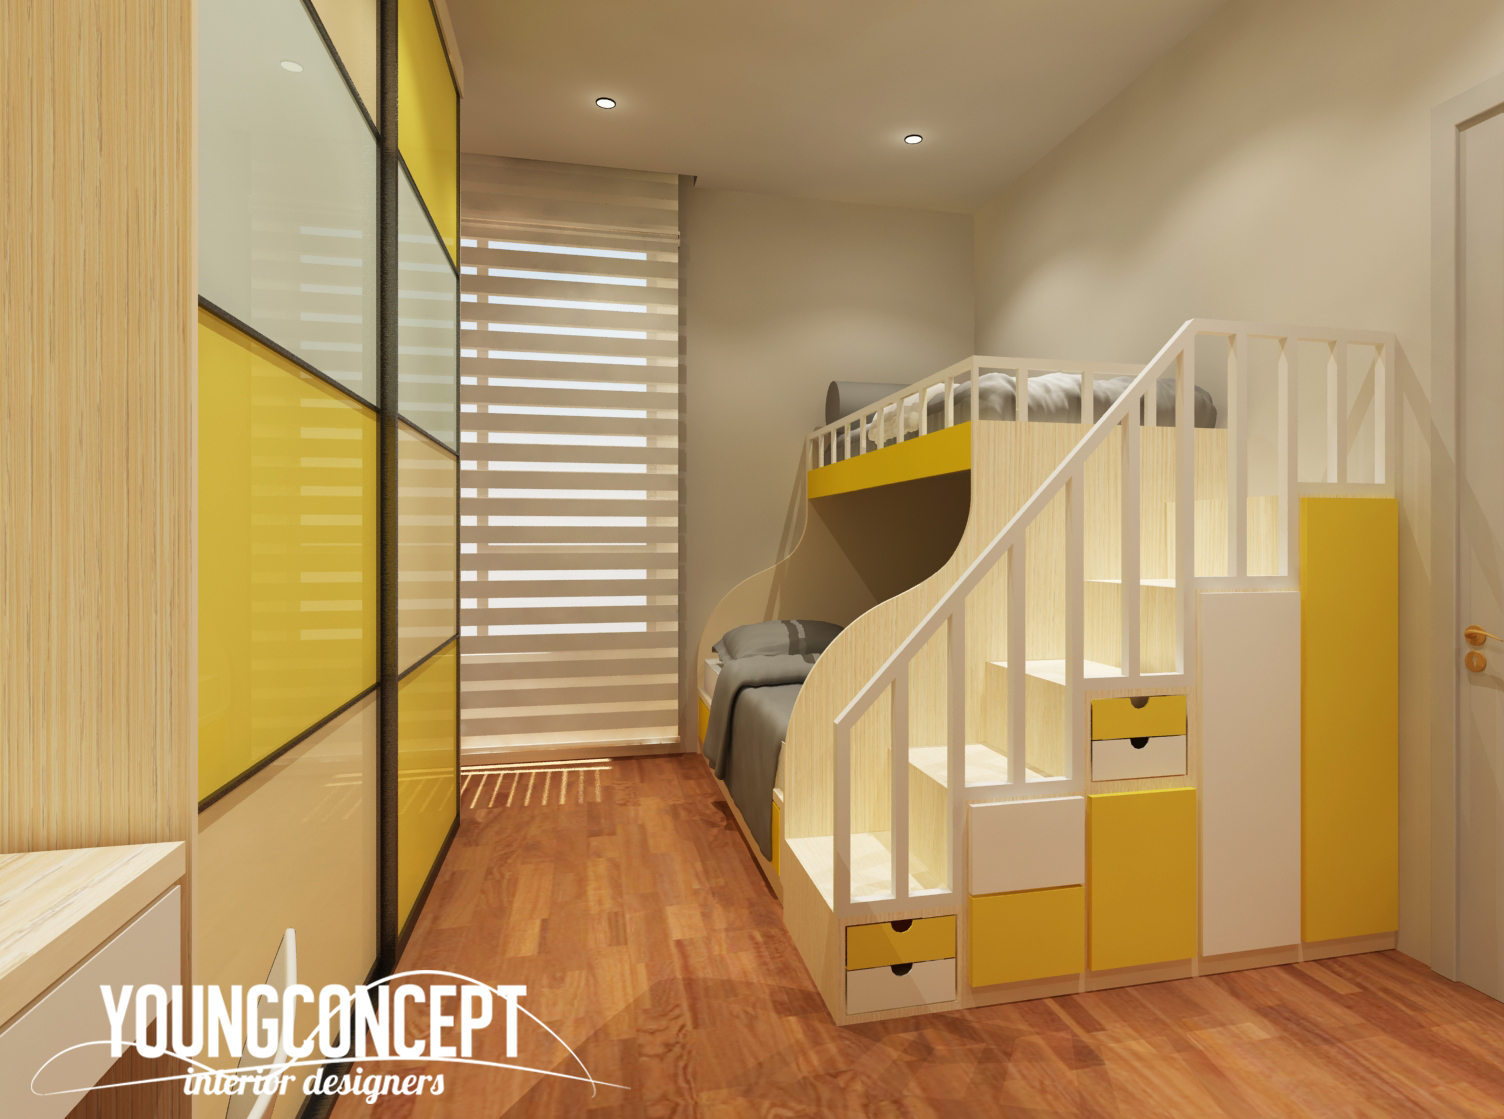 SD Villa, Shah Alam by Young Concept Design Sdn Bhd - Contemporary Above 2400 sqft Semi-D / Bungalow Carpentry Concept Bedroom Kids Bedroom Study / Office Wardrobe Living Living Room Kitchen Kitchen Cabinet Dining Bathroom - Recommend.my